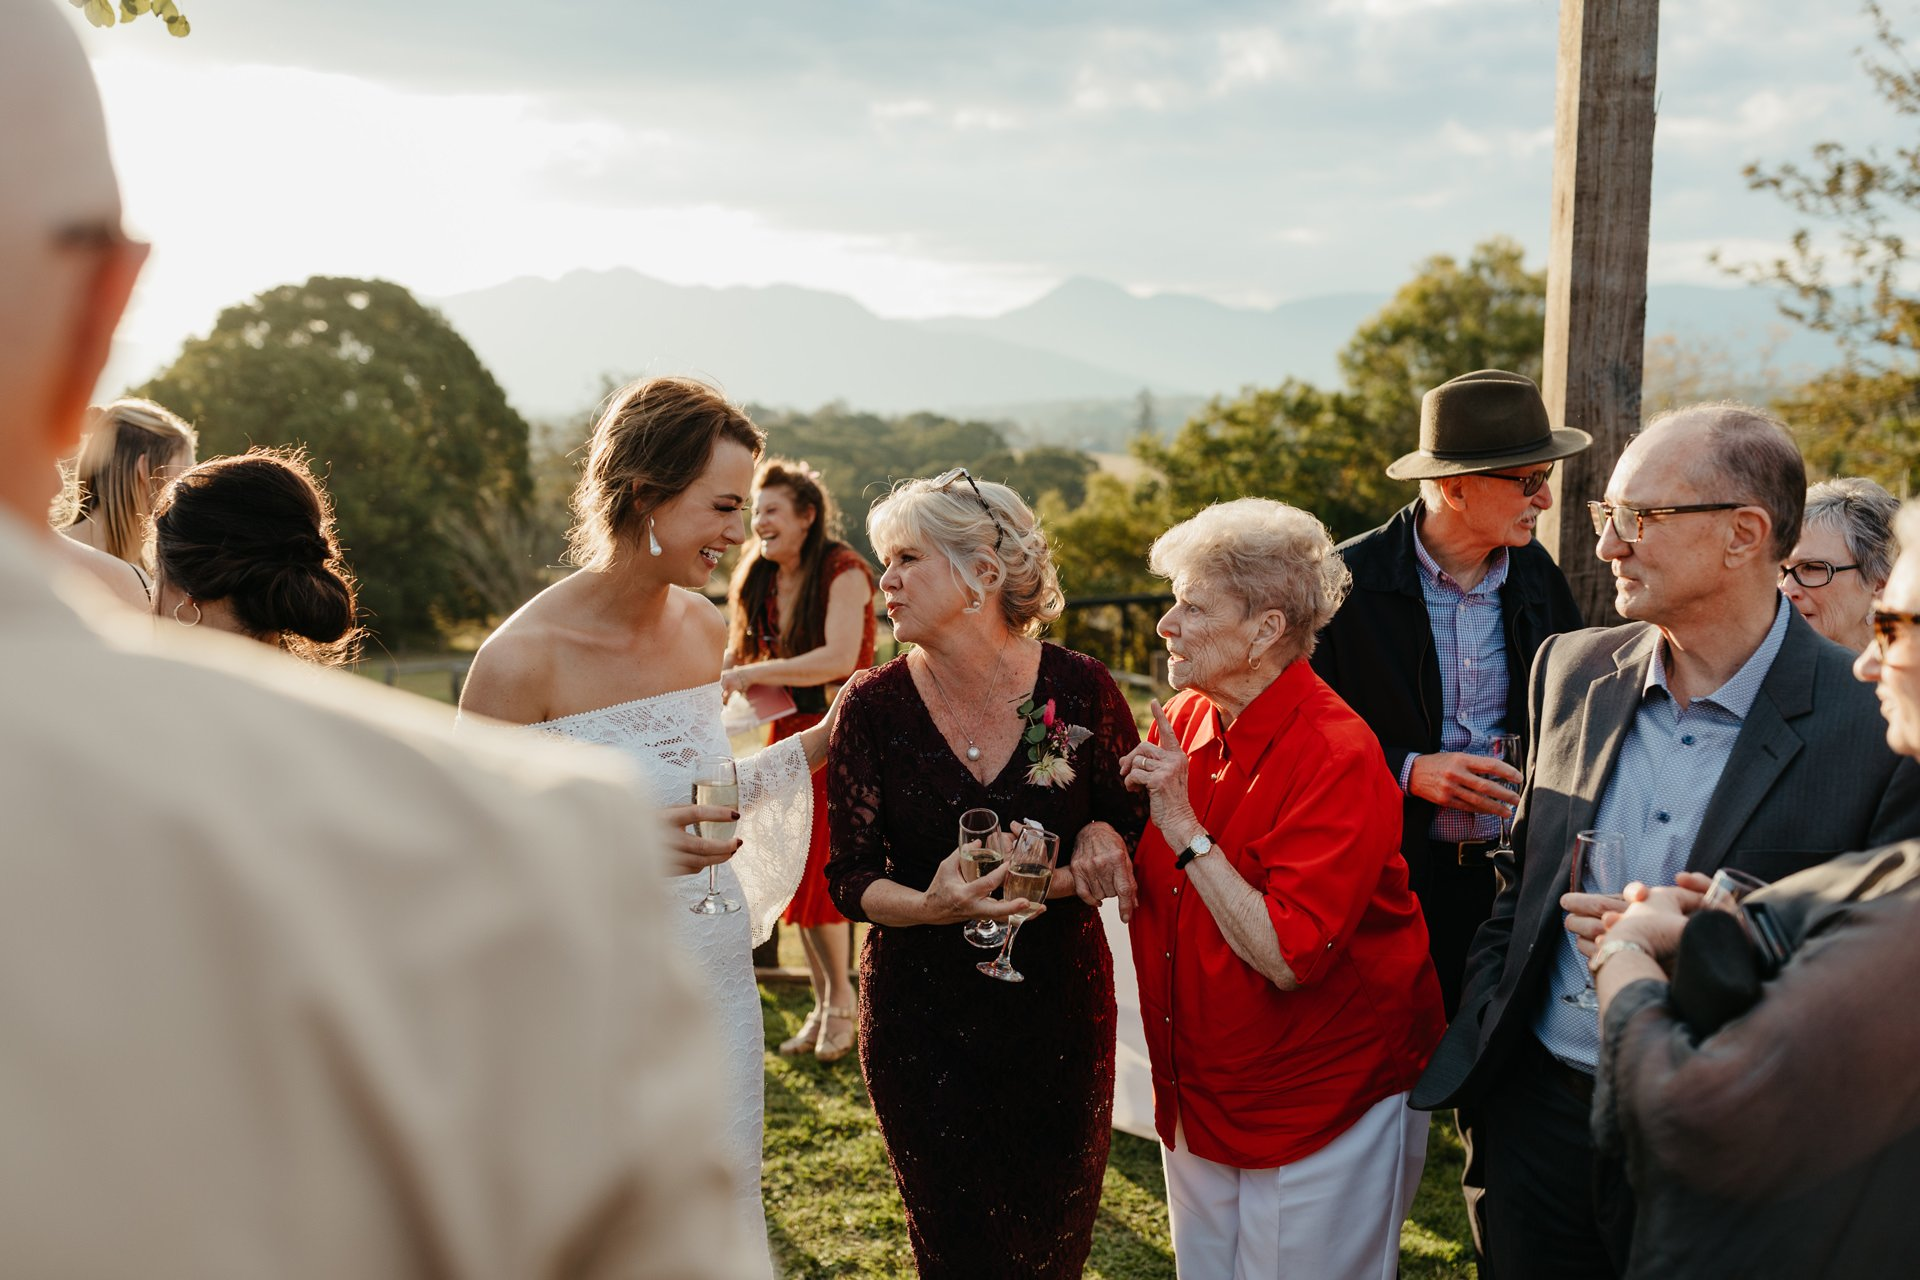 Bellingen-candid-emotive-wedding-photographer-billie-mckay-haydn-elin-bandmann-photography.jpg